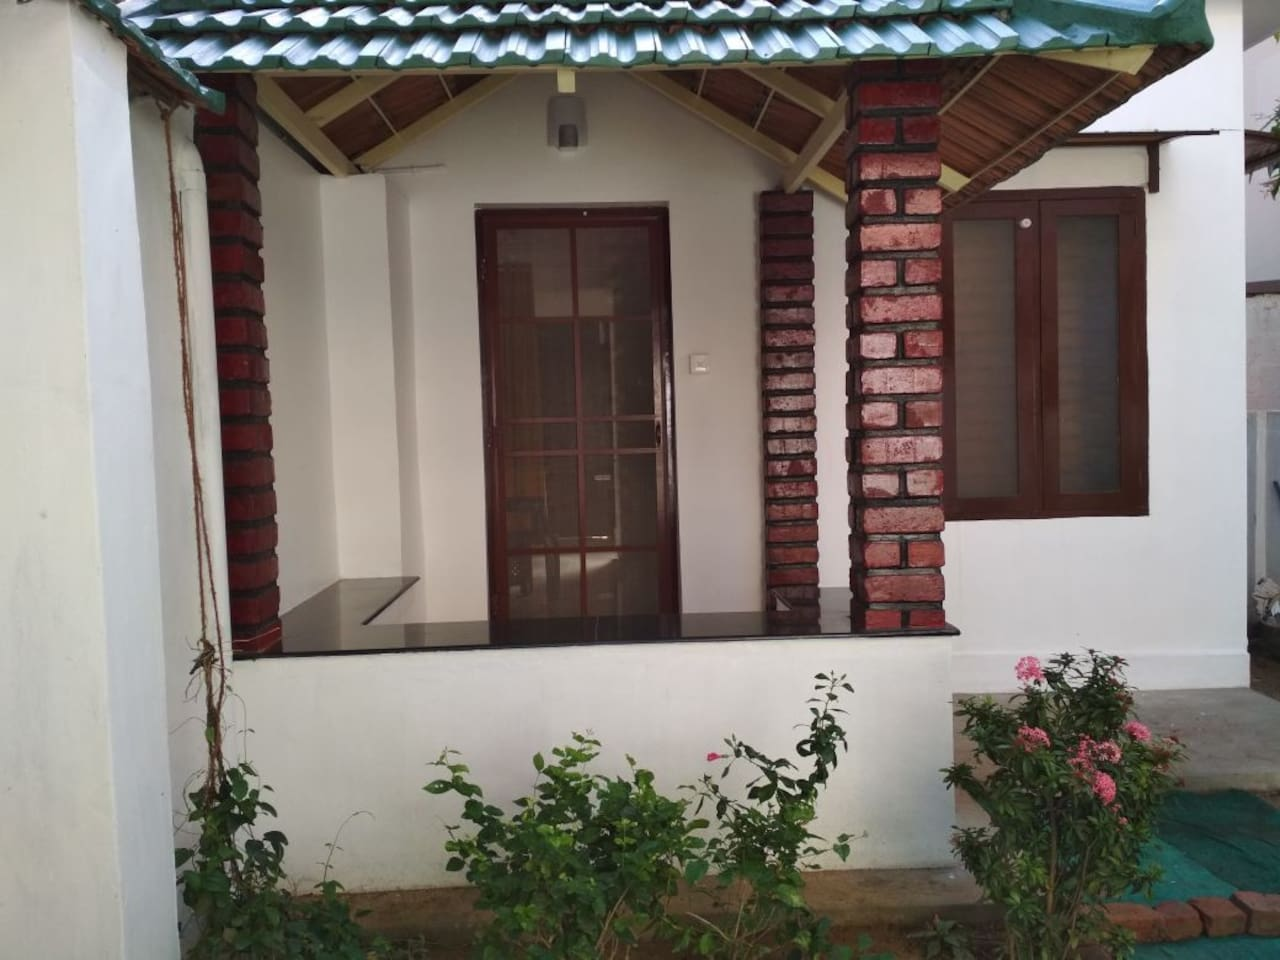 Nest-Sathamangalam is a cute independent house with garden